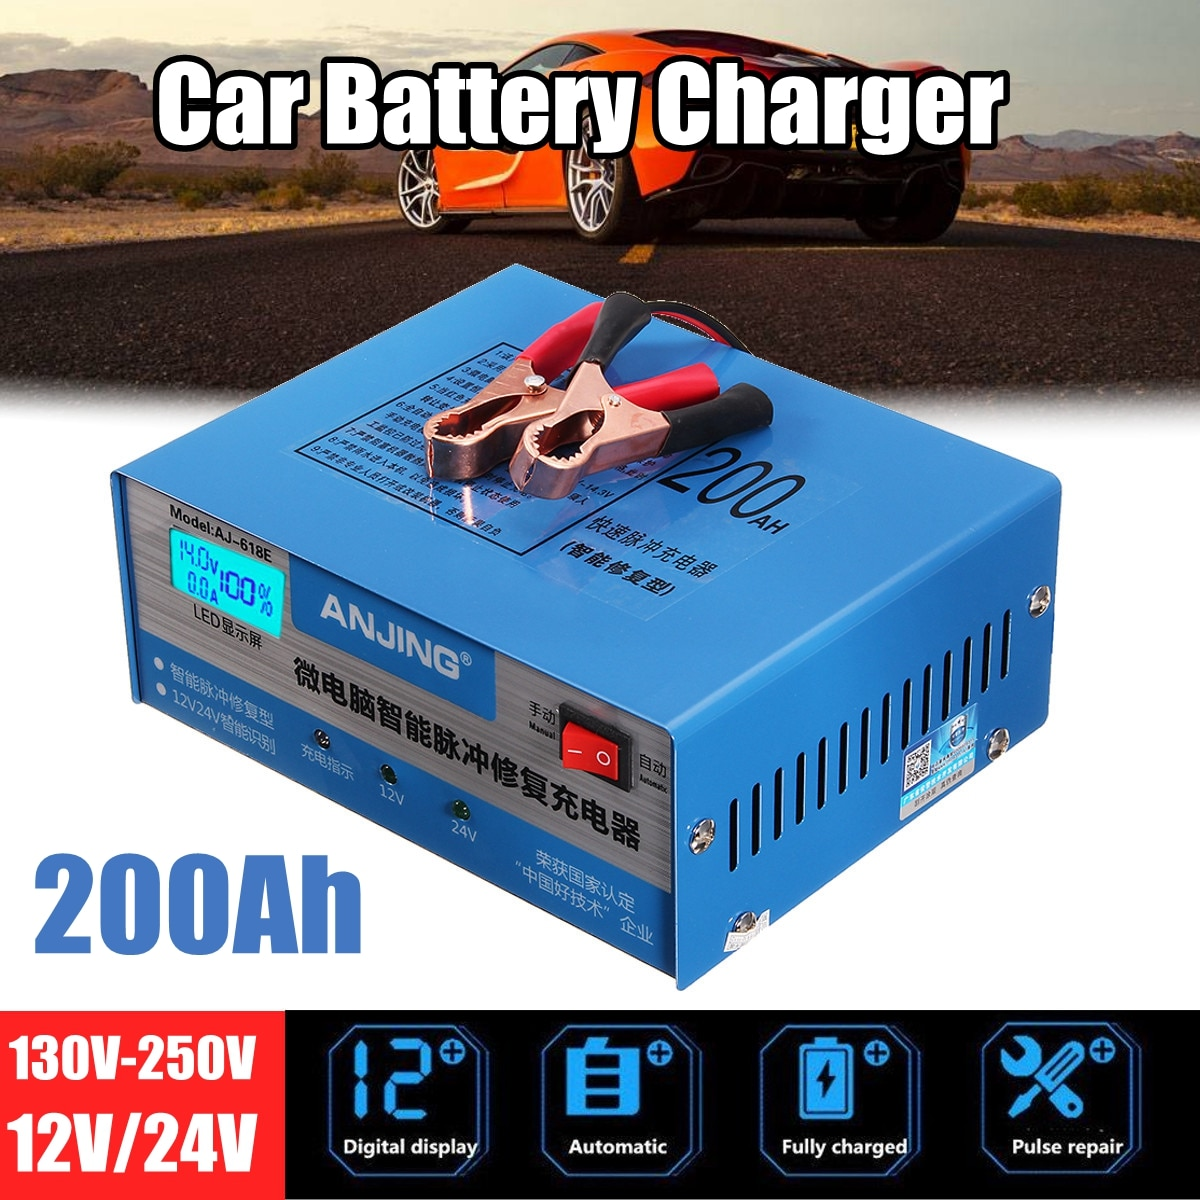 ANJING AJ-618E Car Battery Charger Automatic Intelligent Pulse Repair 130V-250V 200AH 12/24V With Ad